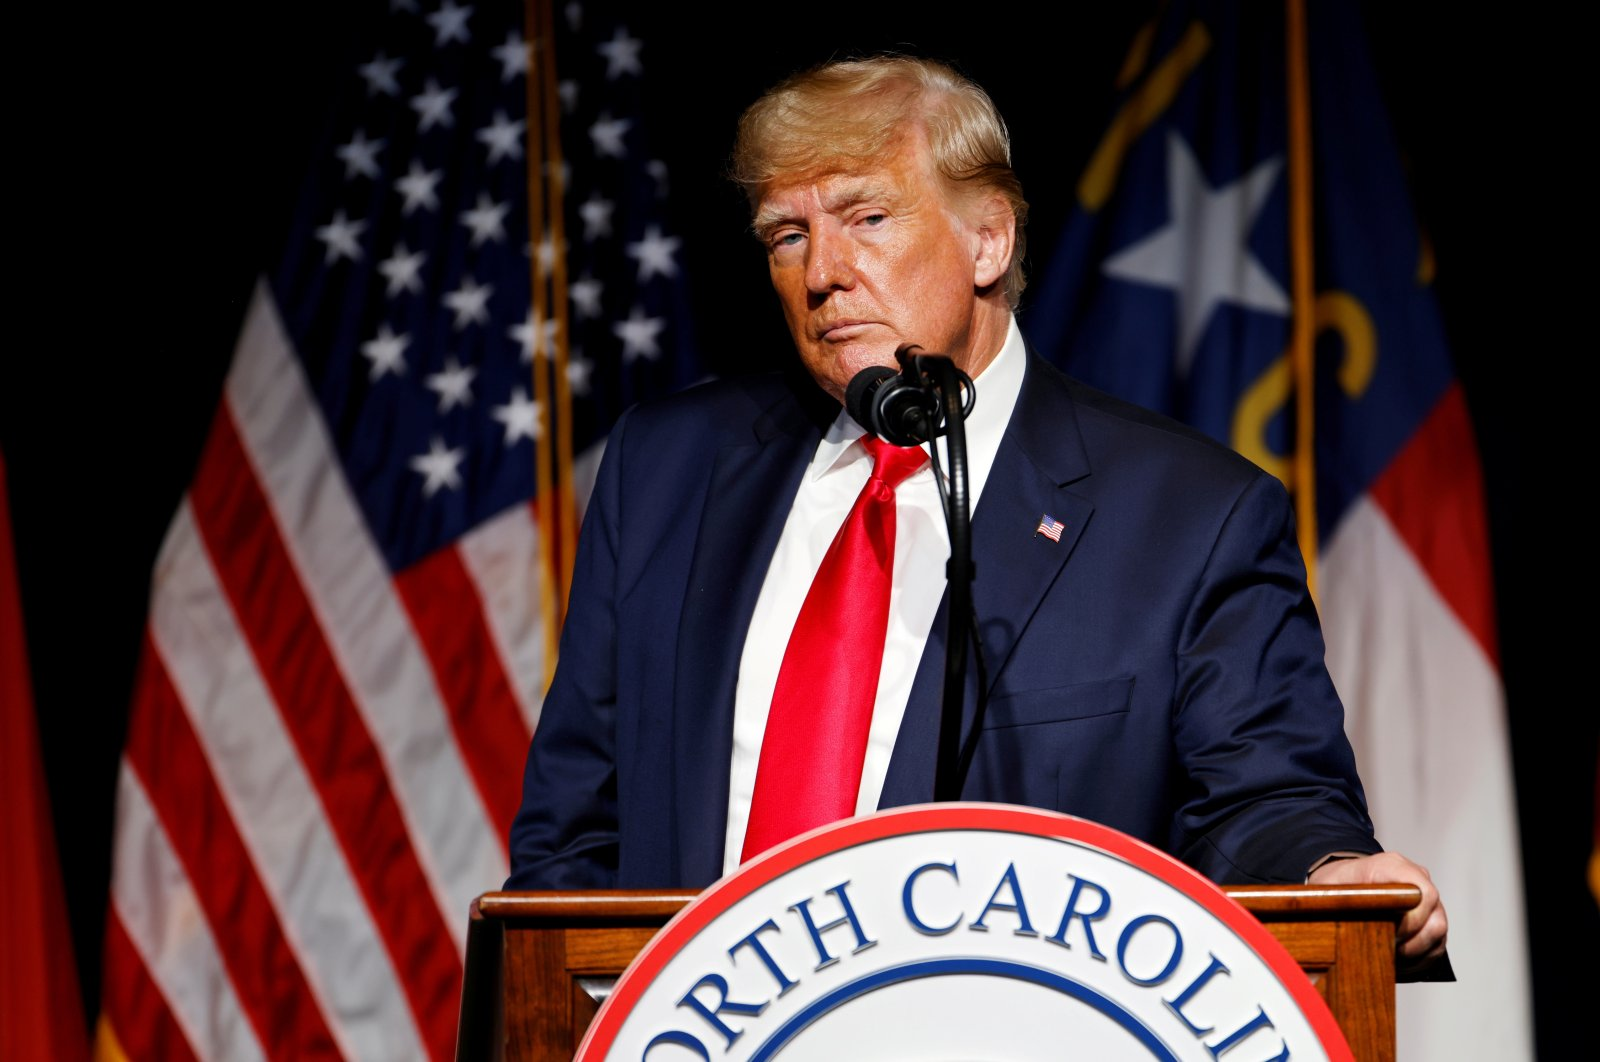 Former U.S. President Donald Trump pauses while speaking at the North Carolina GOP convention dinner in Greenville, North Carolina, U.S., June 5, 2021. (Reuters Photo)